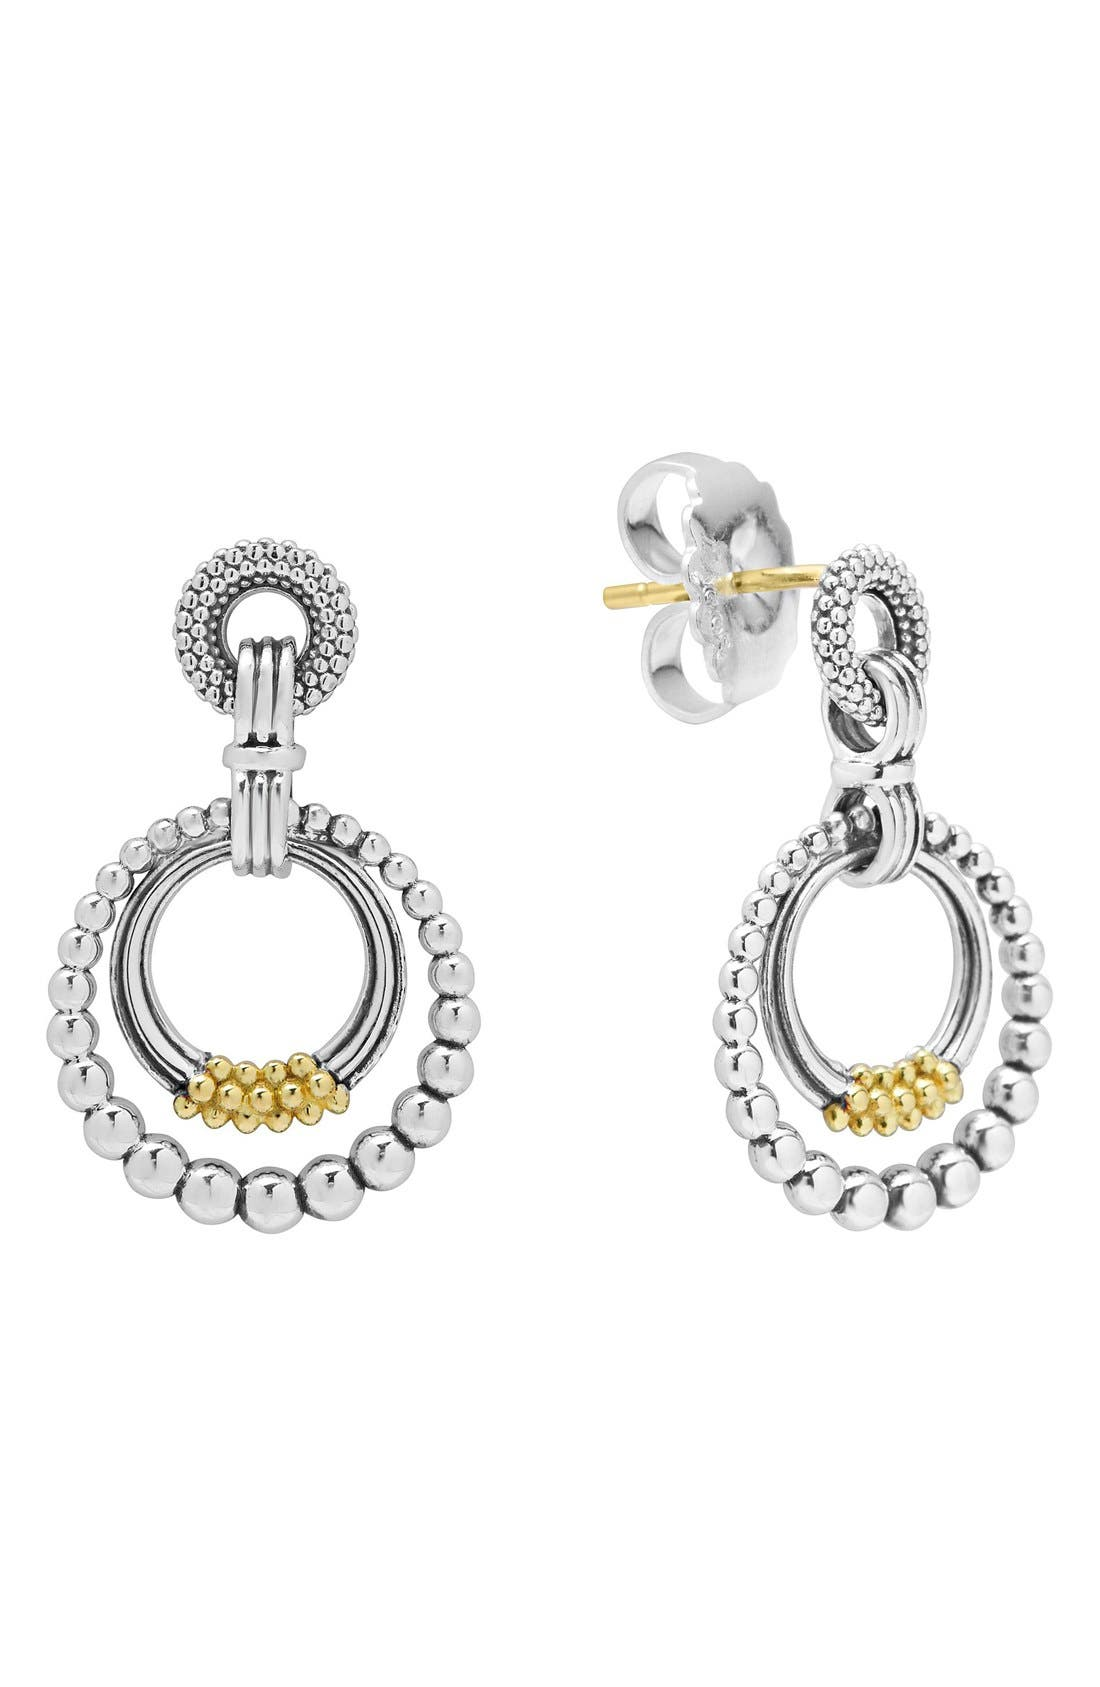 LAGOS Caviar Superfine Two-Tone Door Knocker Earrings